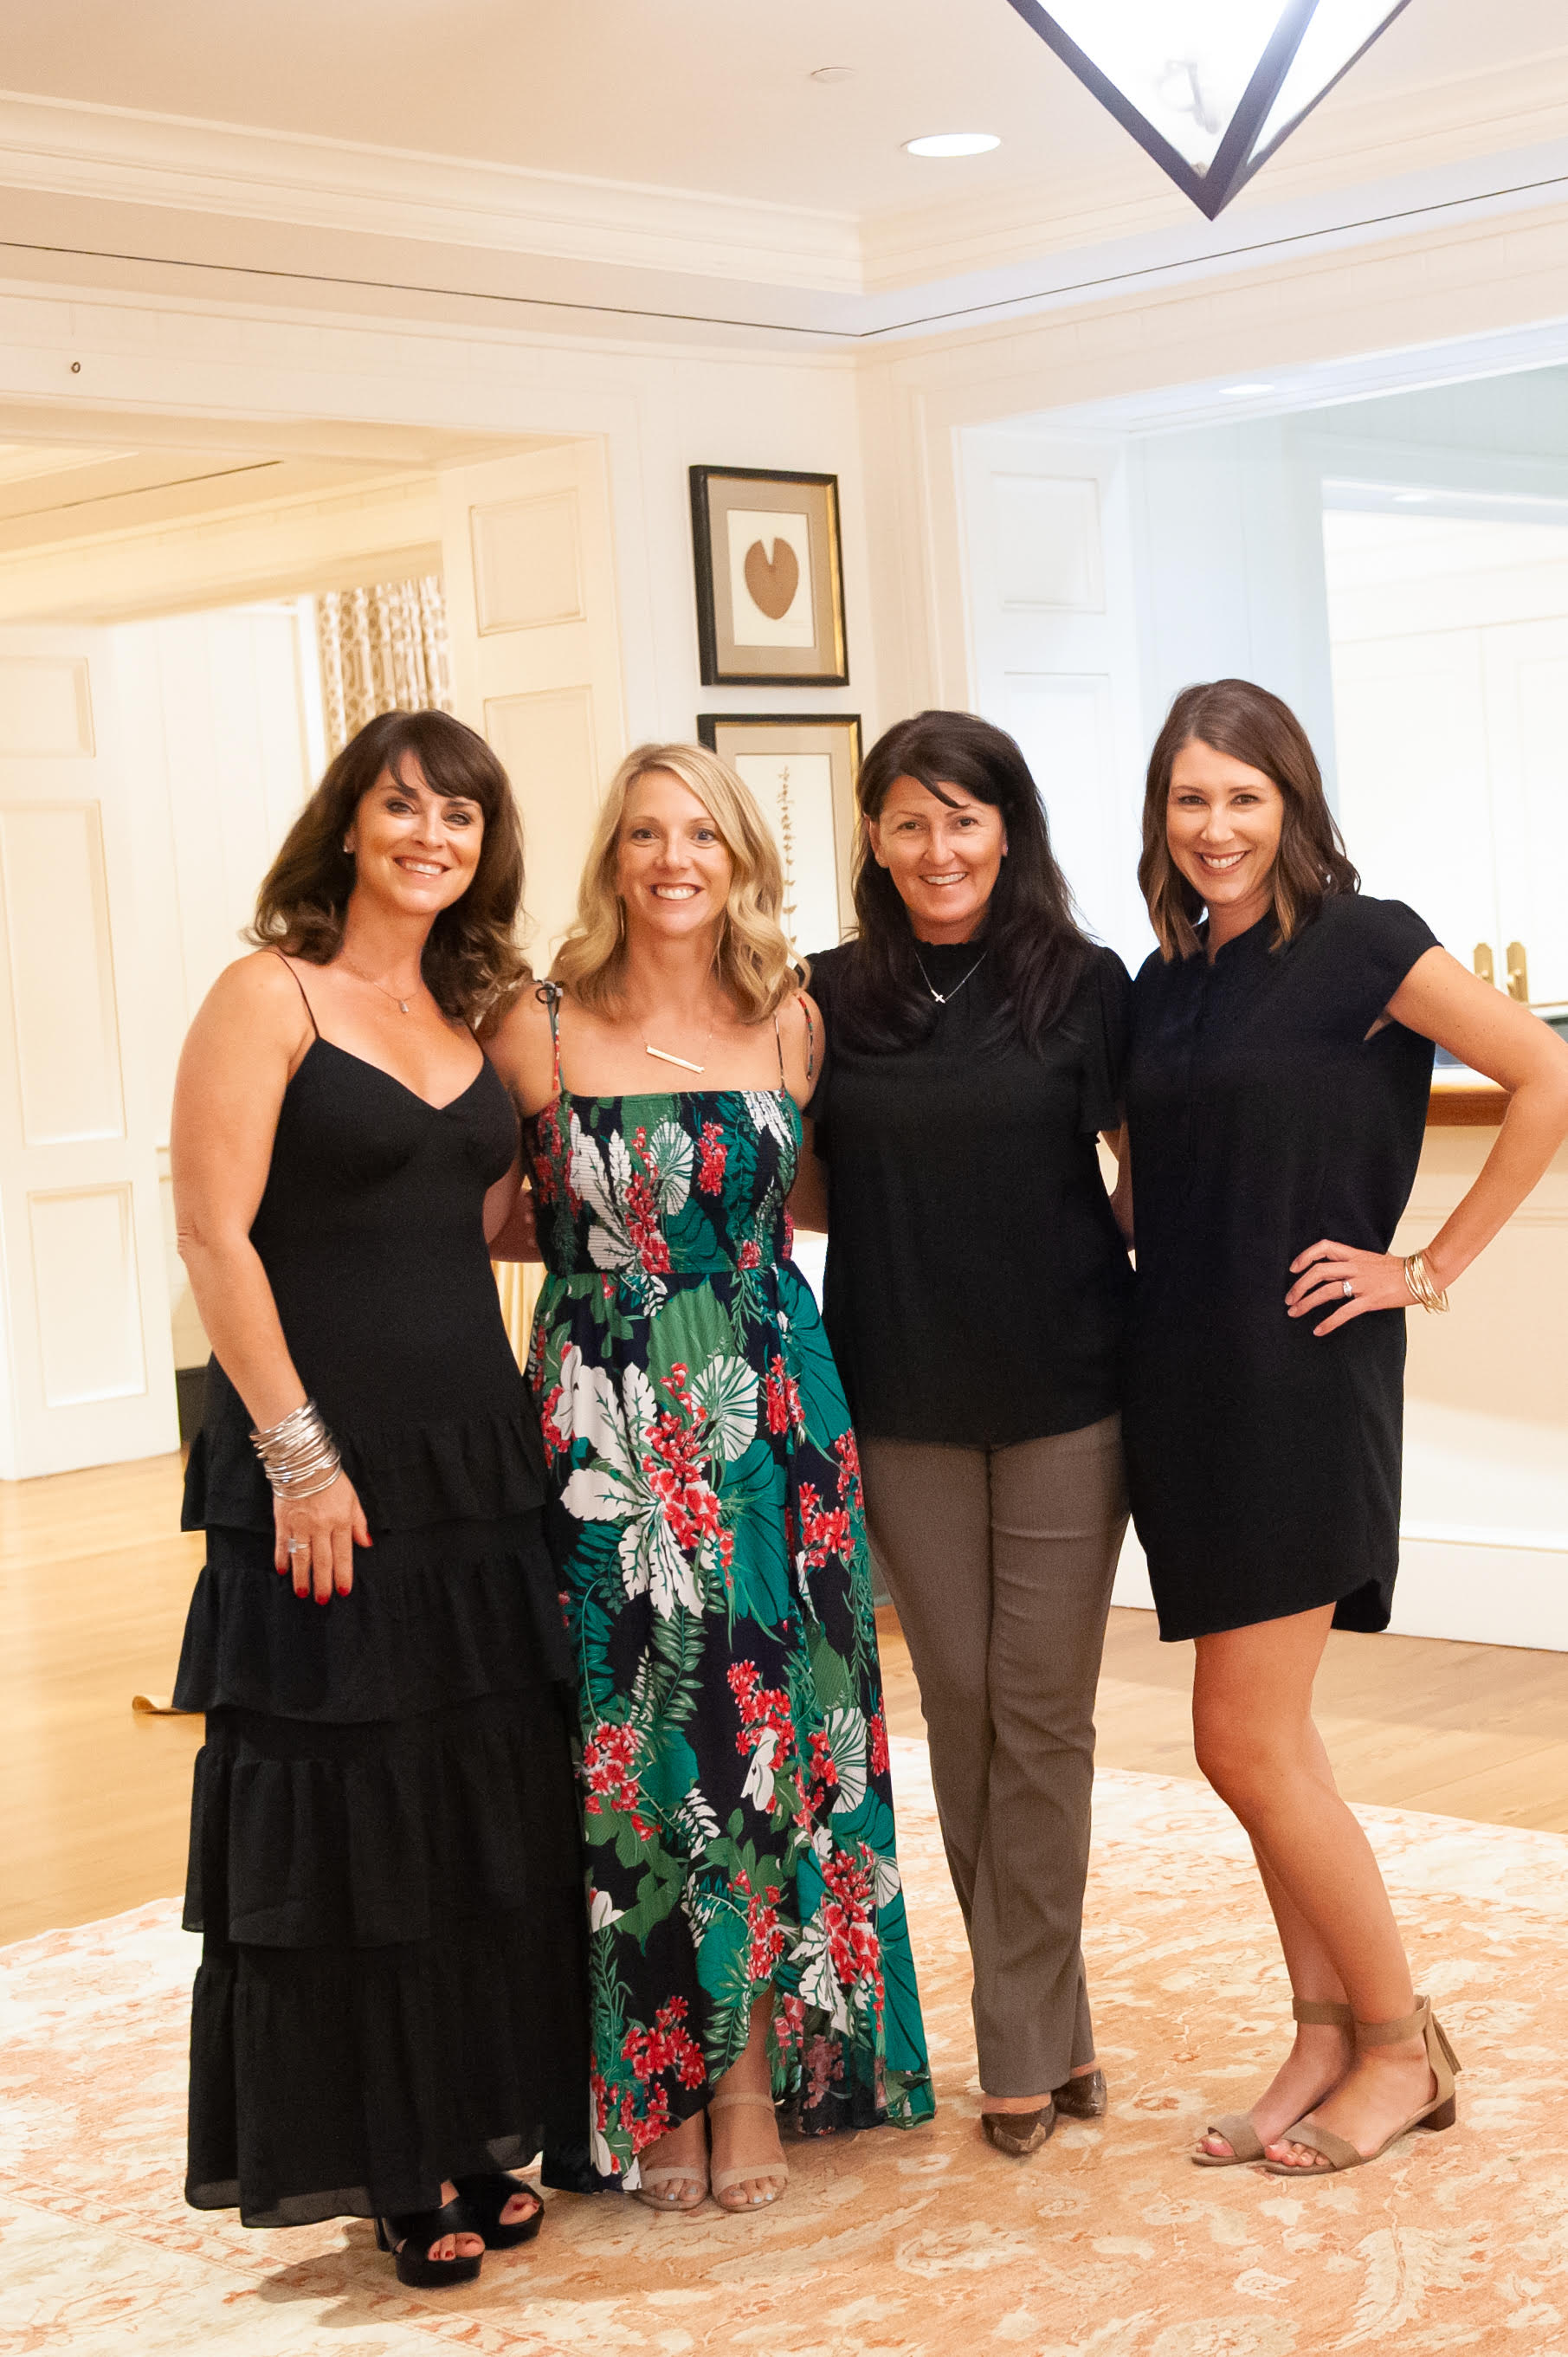 Tricia Peterson, Lindsey Romberg, Keri Seay, and Angie Esposito  all with Island House Real Estate.